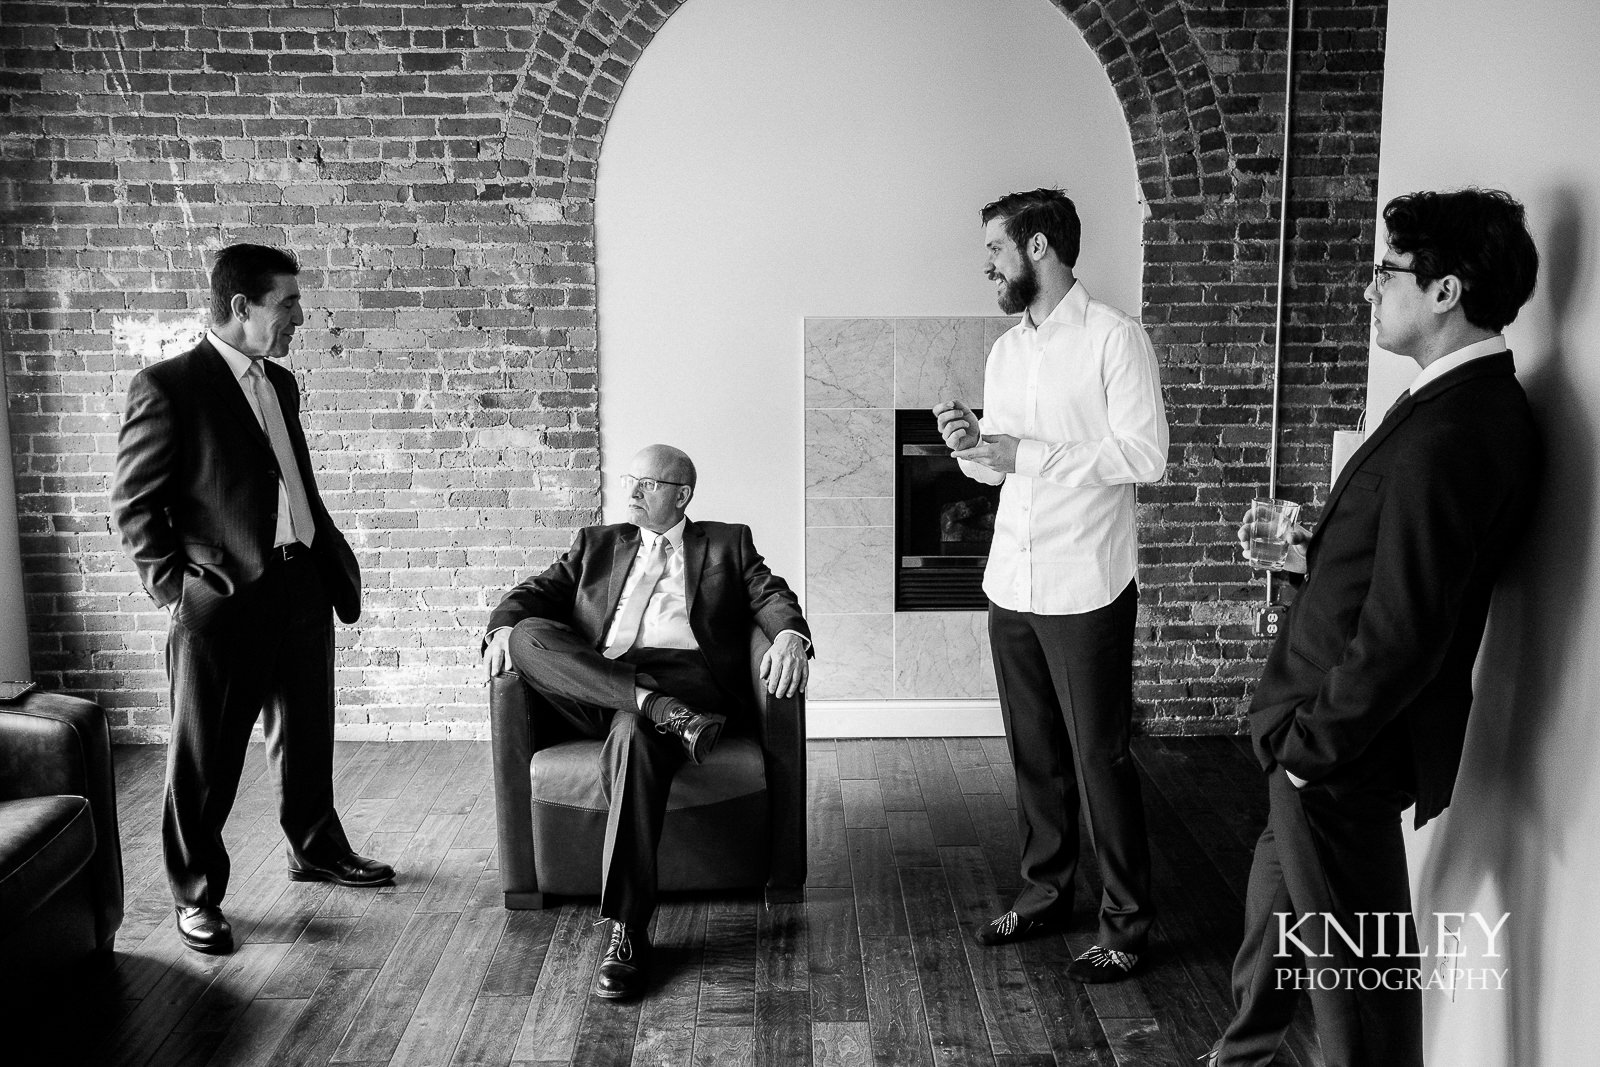 08-Lofts-on-Pearl-Hotel-Buffalo-NY-wedding-getting-ready-photo-Kniley-Photography.jpg